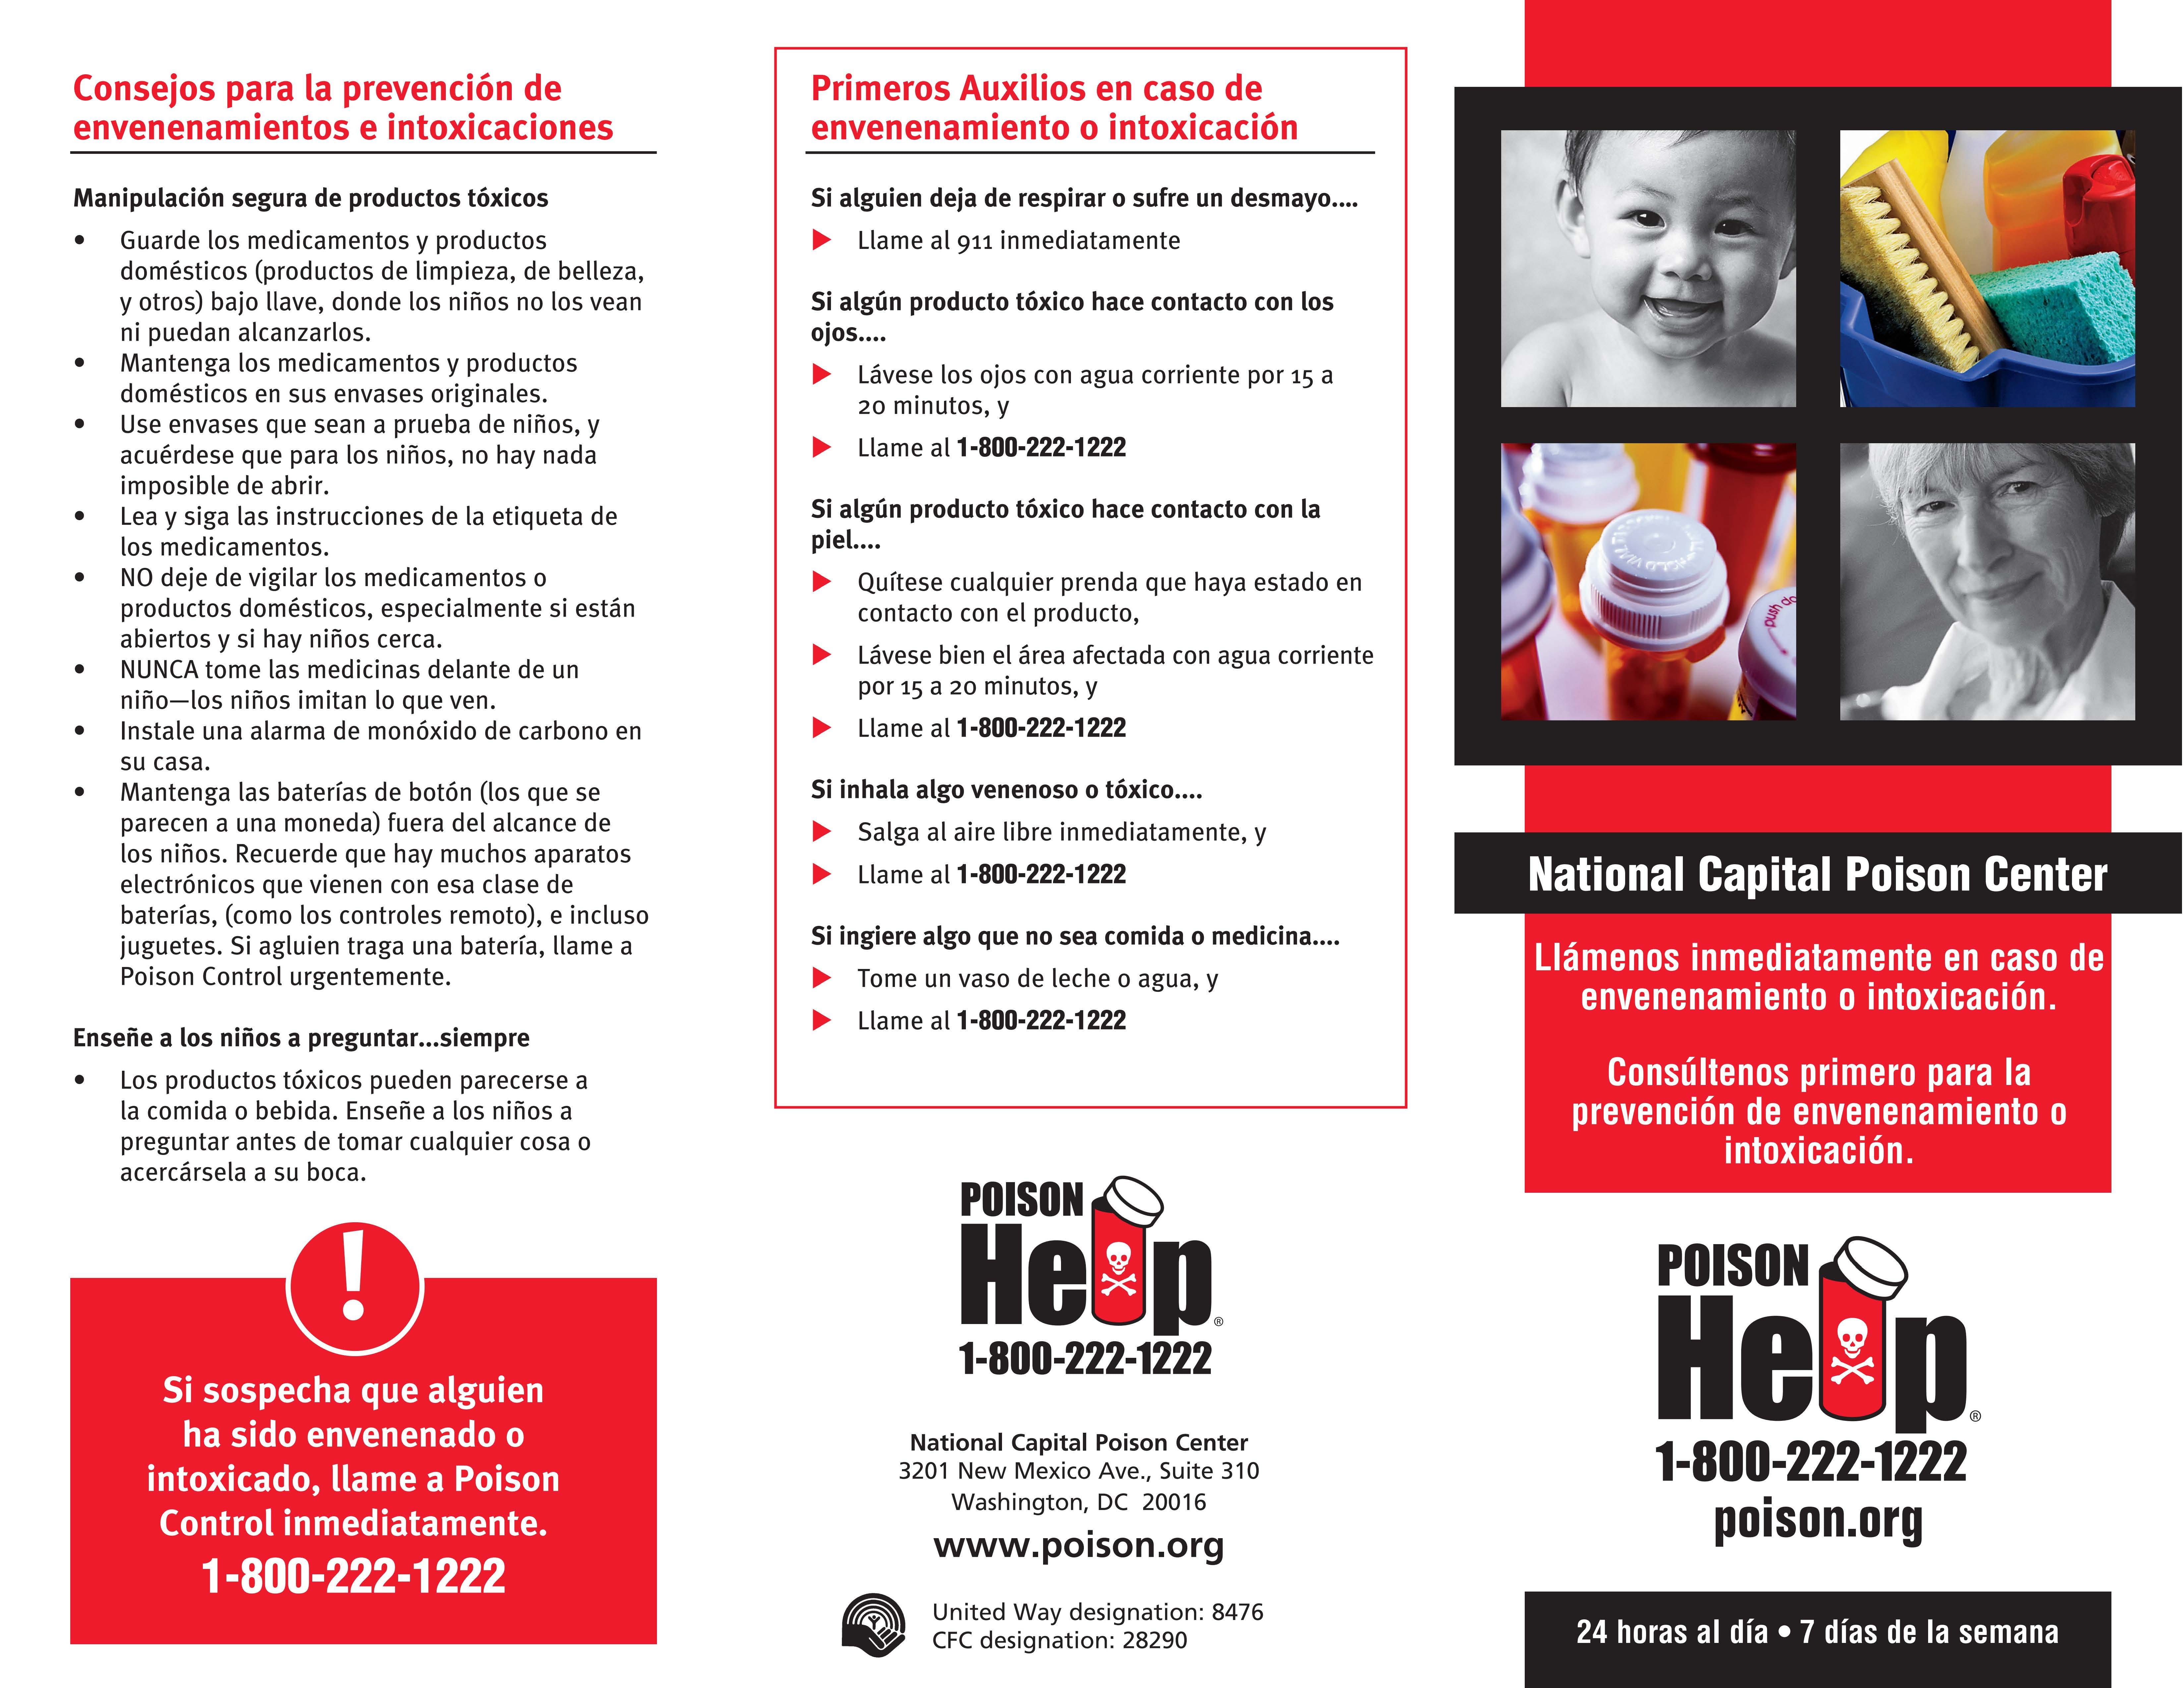 Spanish brochure NCPC